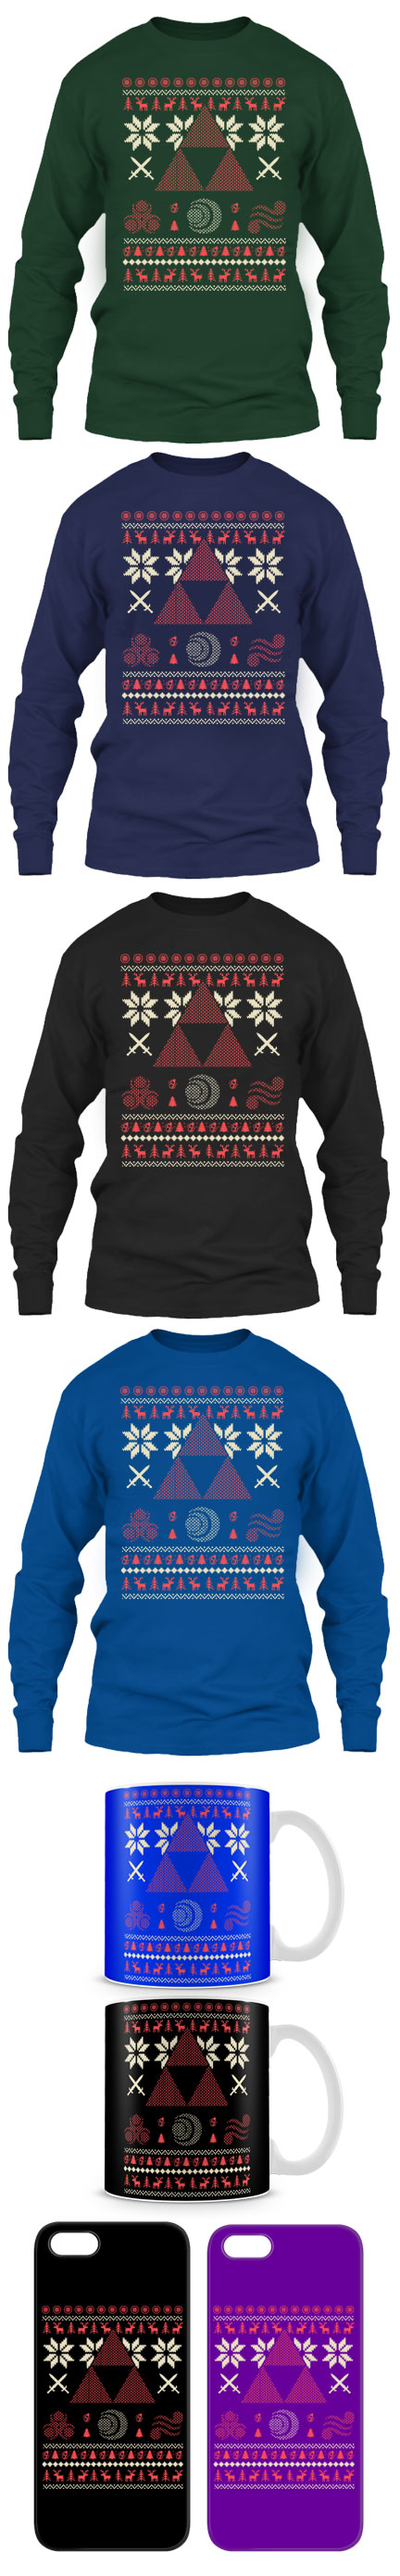 Limited Edition Ugly Christmas Sweater For Legend Of Zelda Fans ...